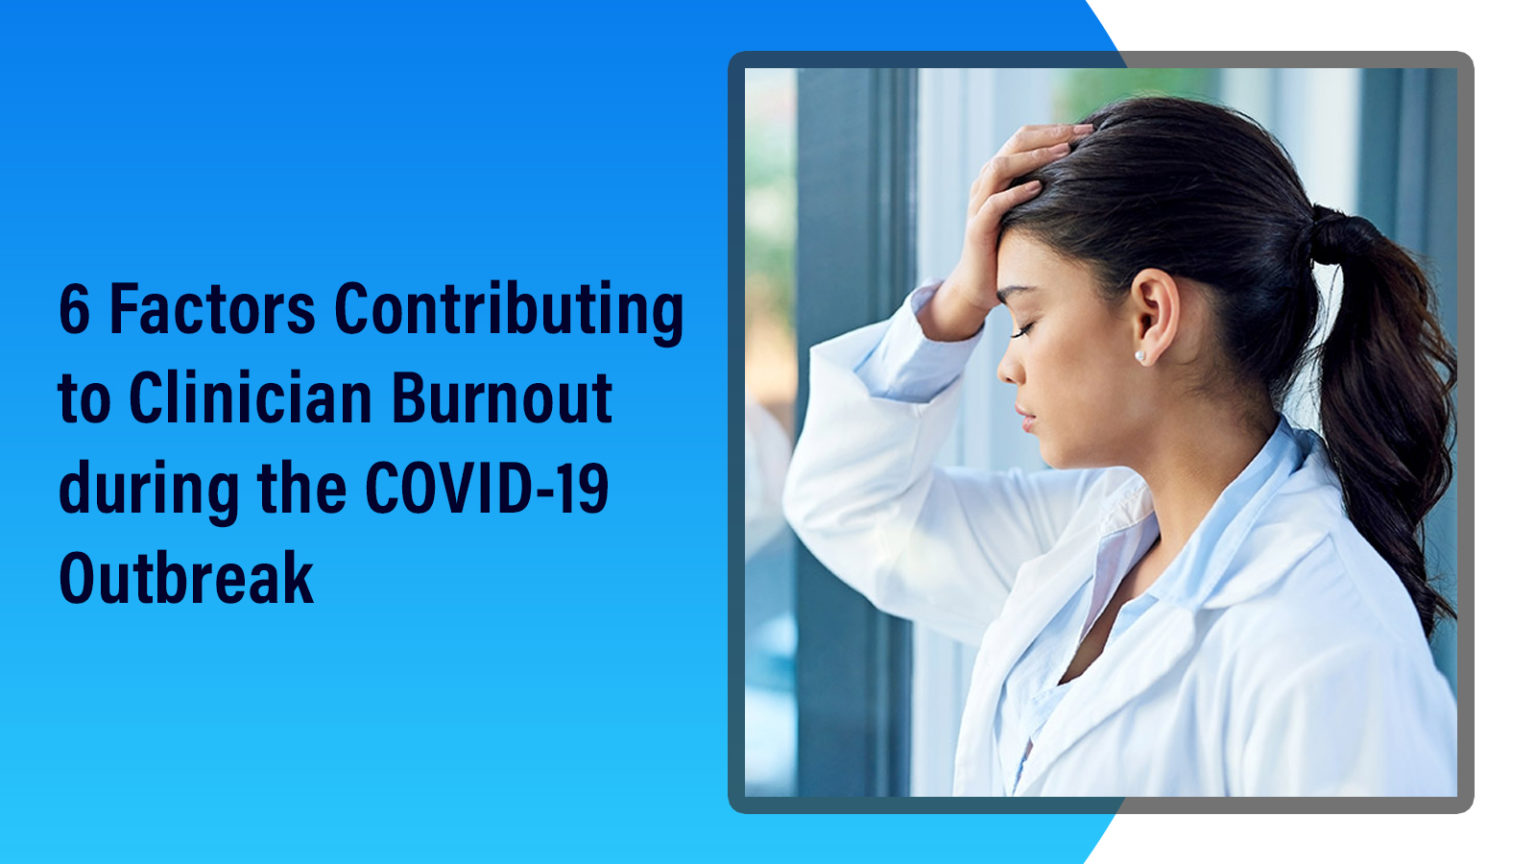 6 Factors Contributing to Clinician Burnout during the COVID-19 Outbreak